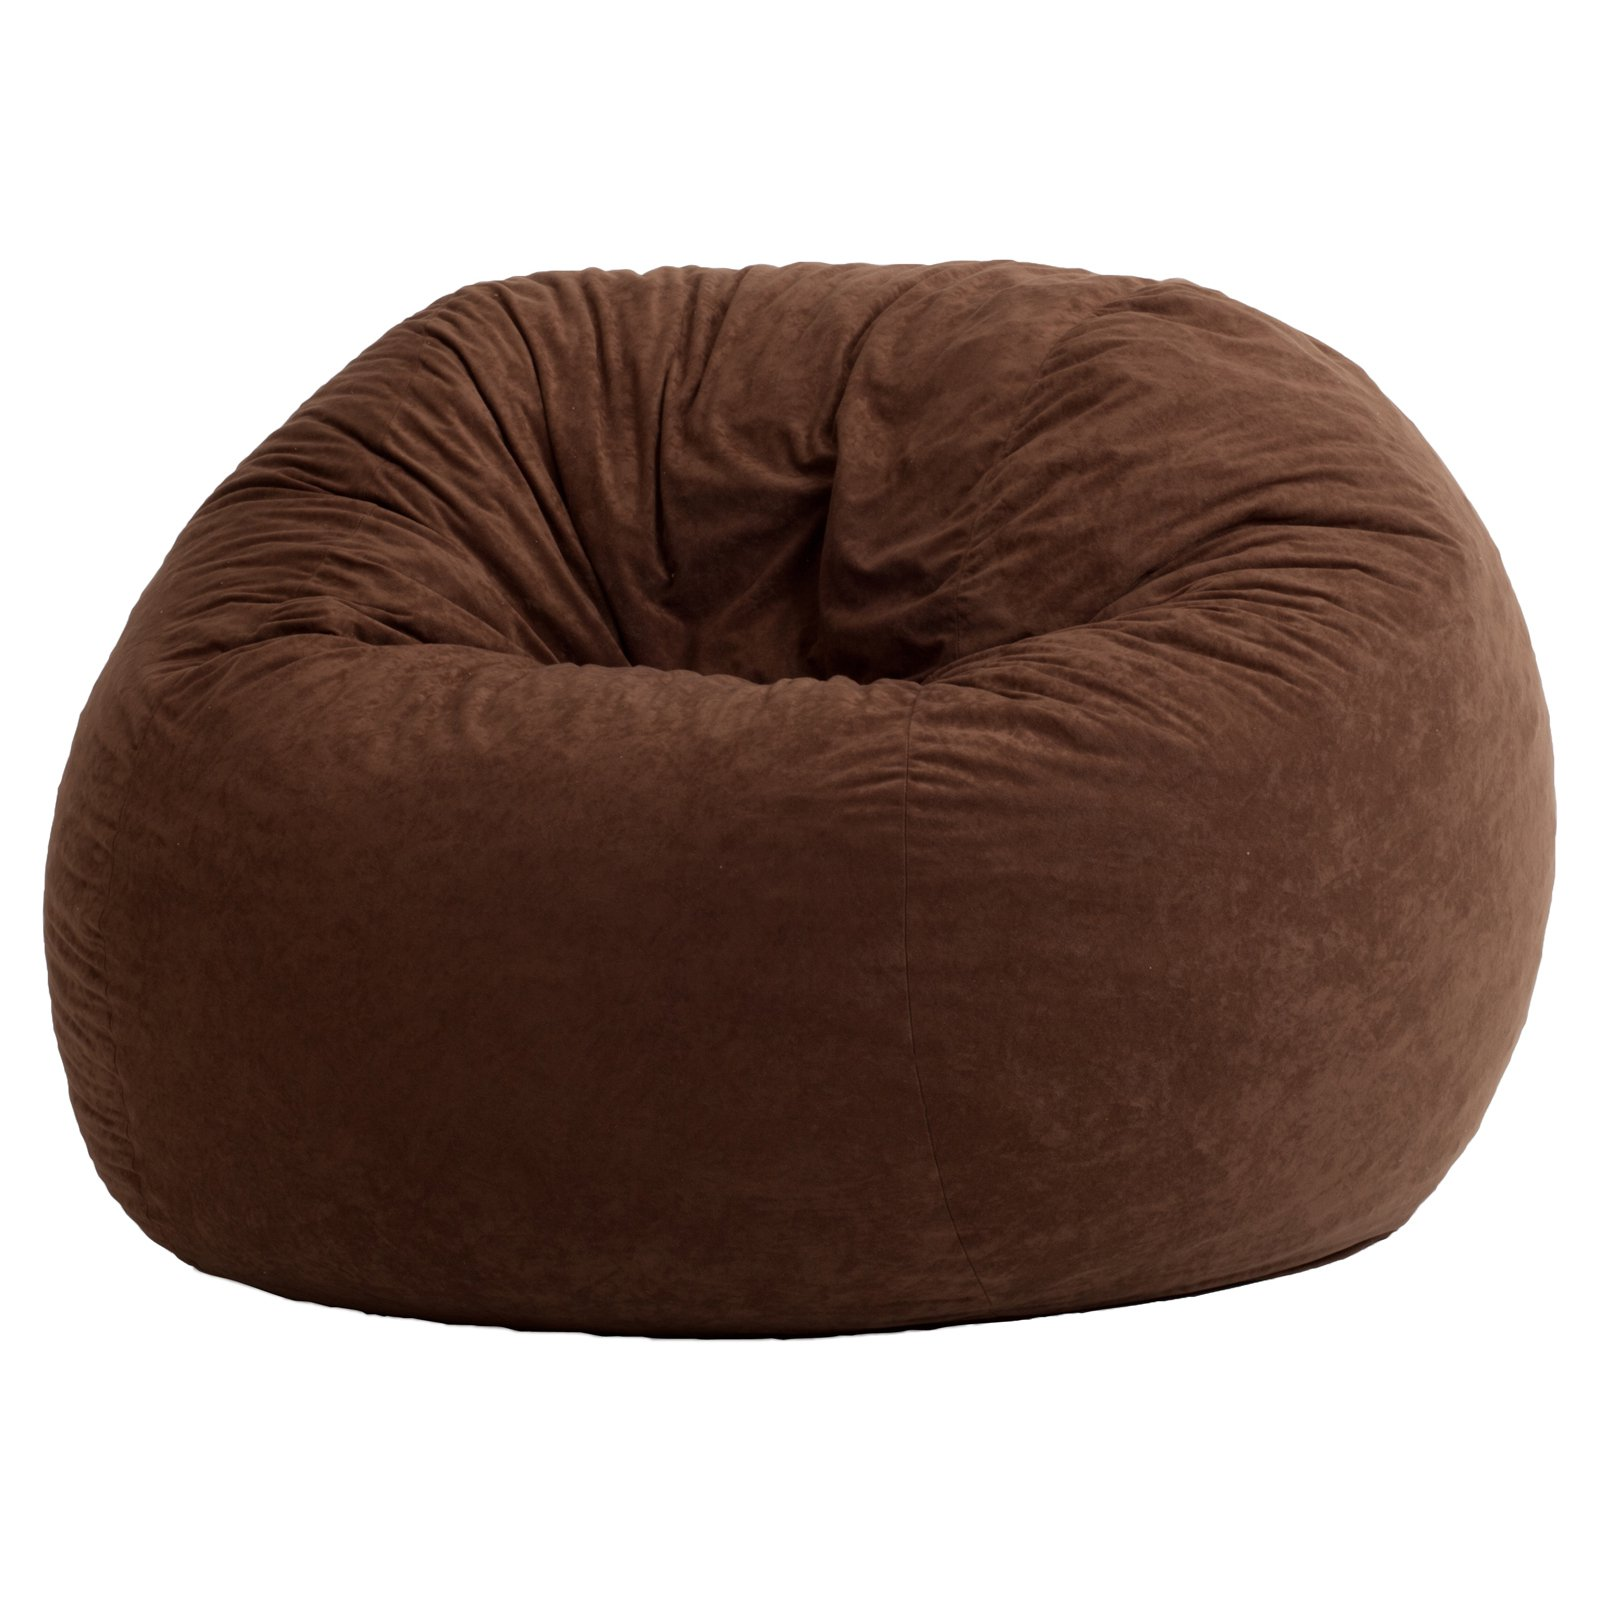 big joe bean bag chair multiple colors 33 x 32 25 french barrel back dining inspirational chairs rtty1